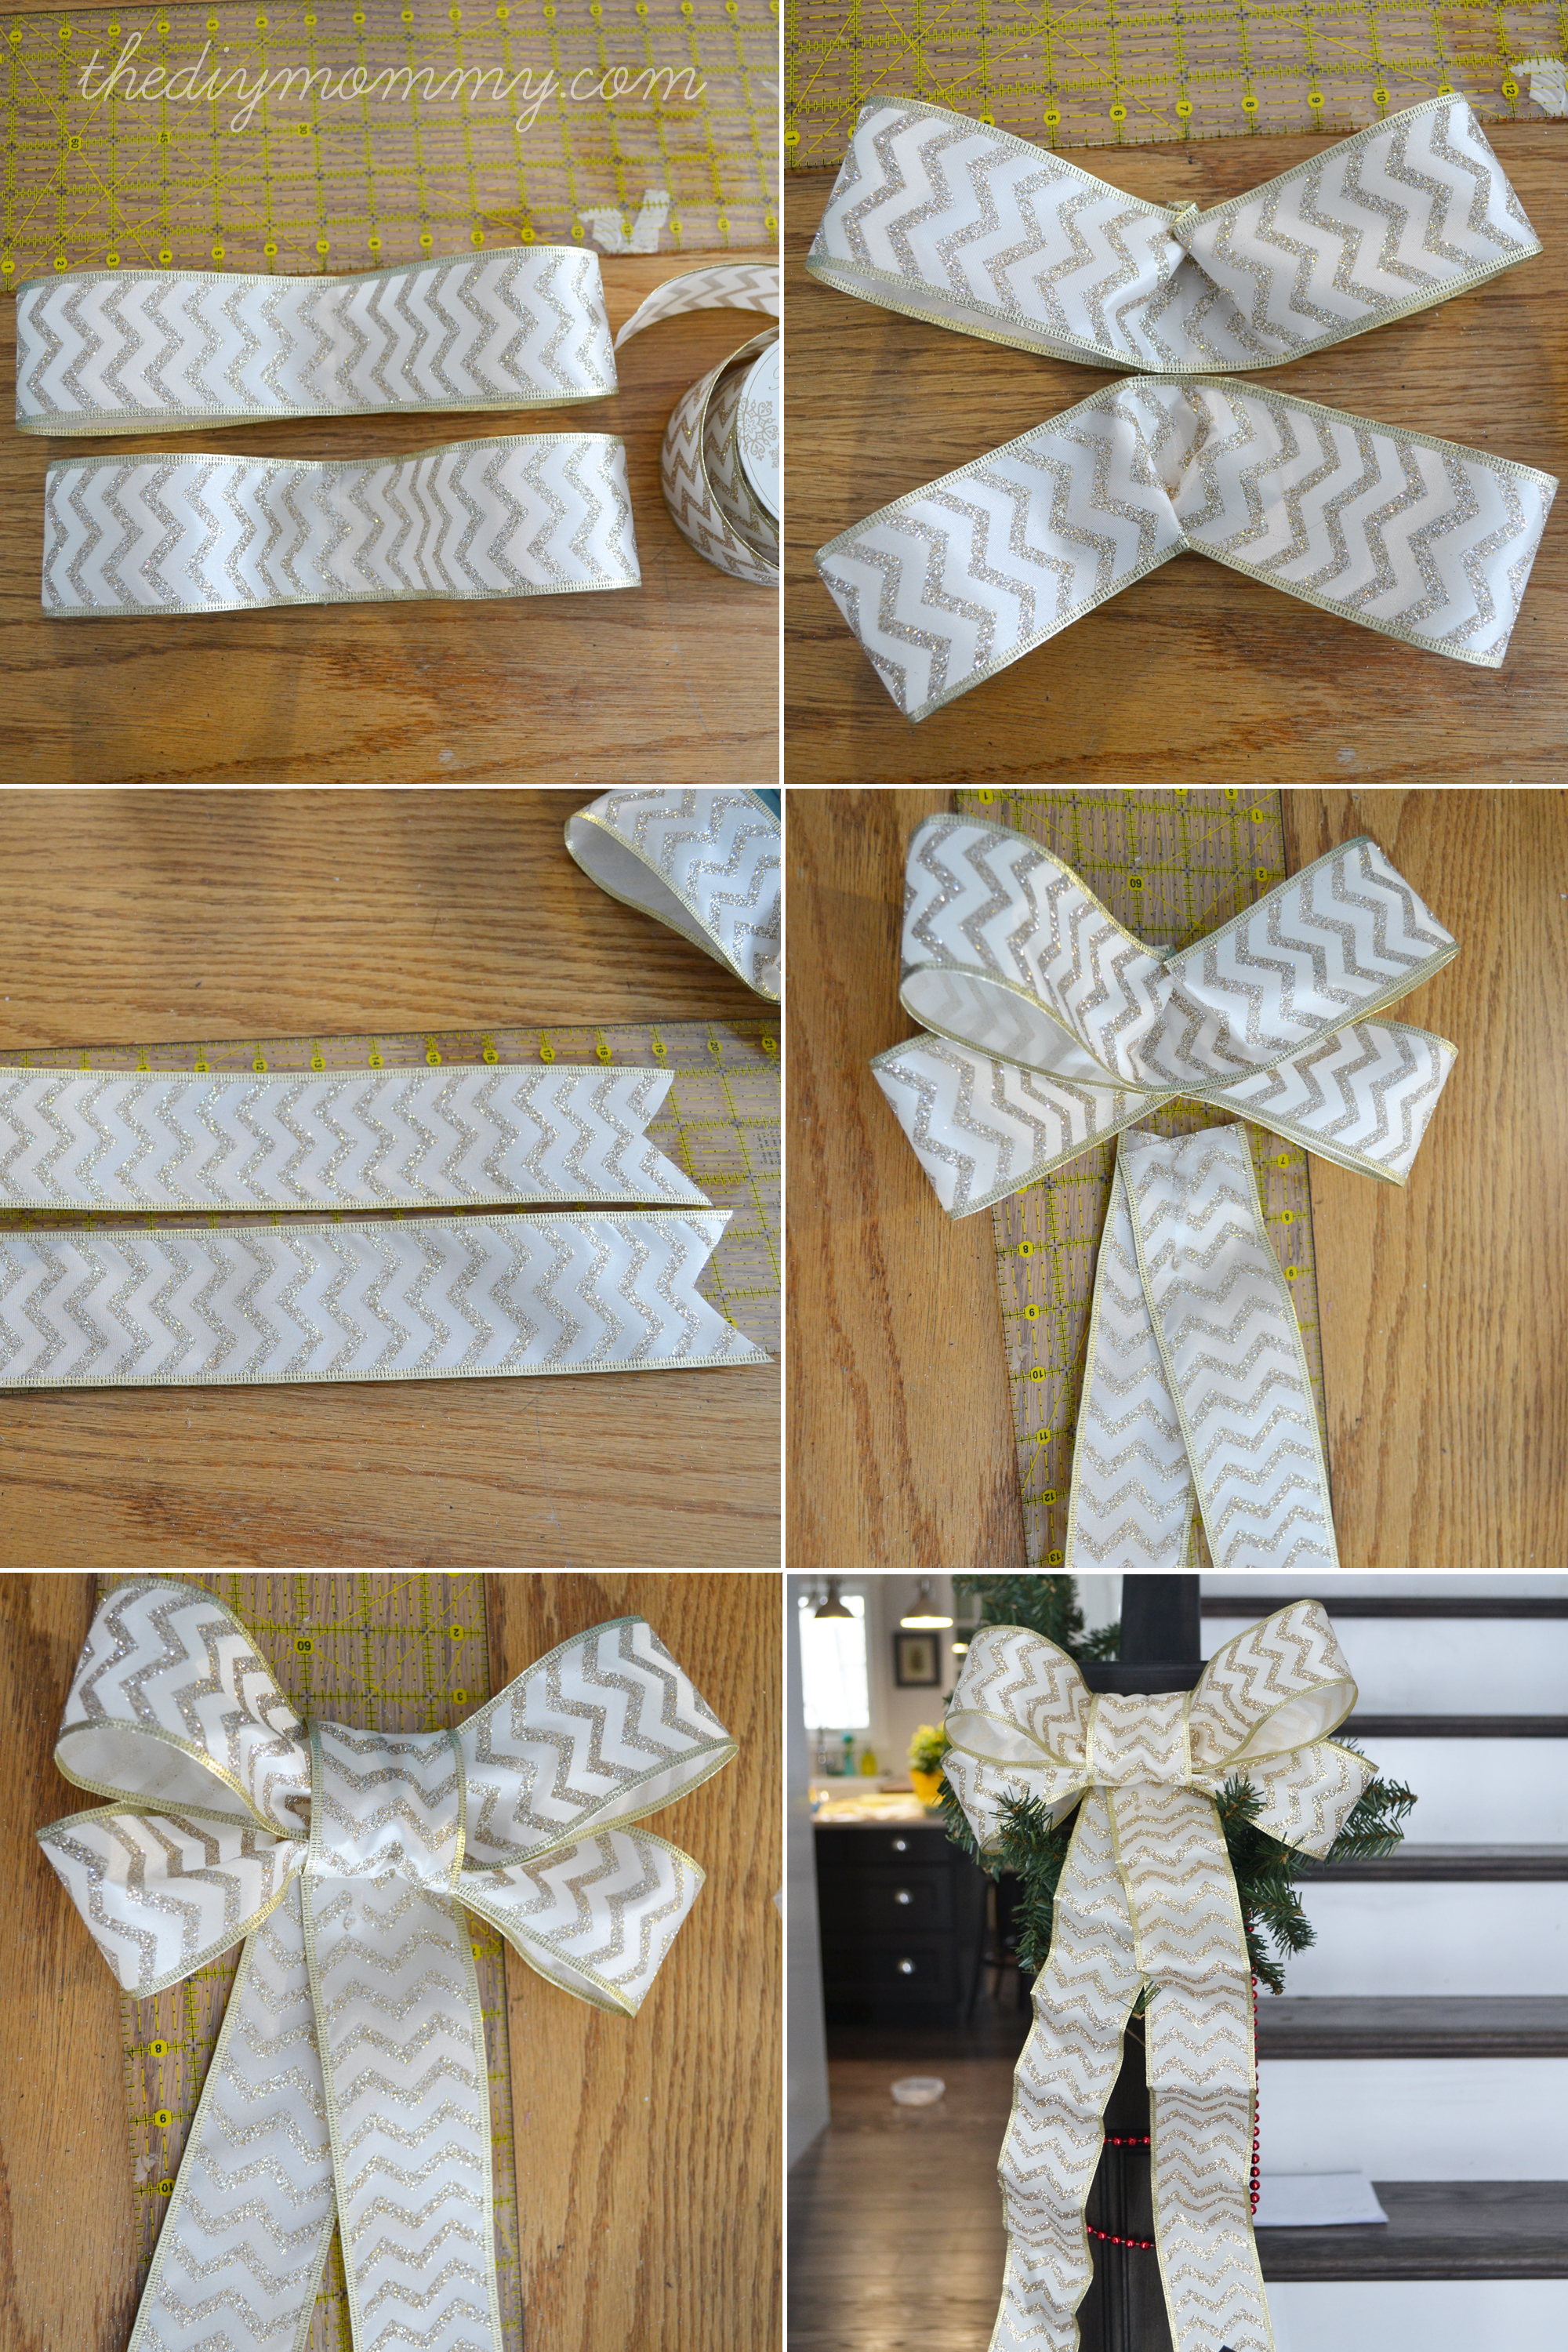 How to make an easy bow for a gift or christmas tree step by.